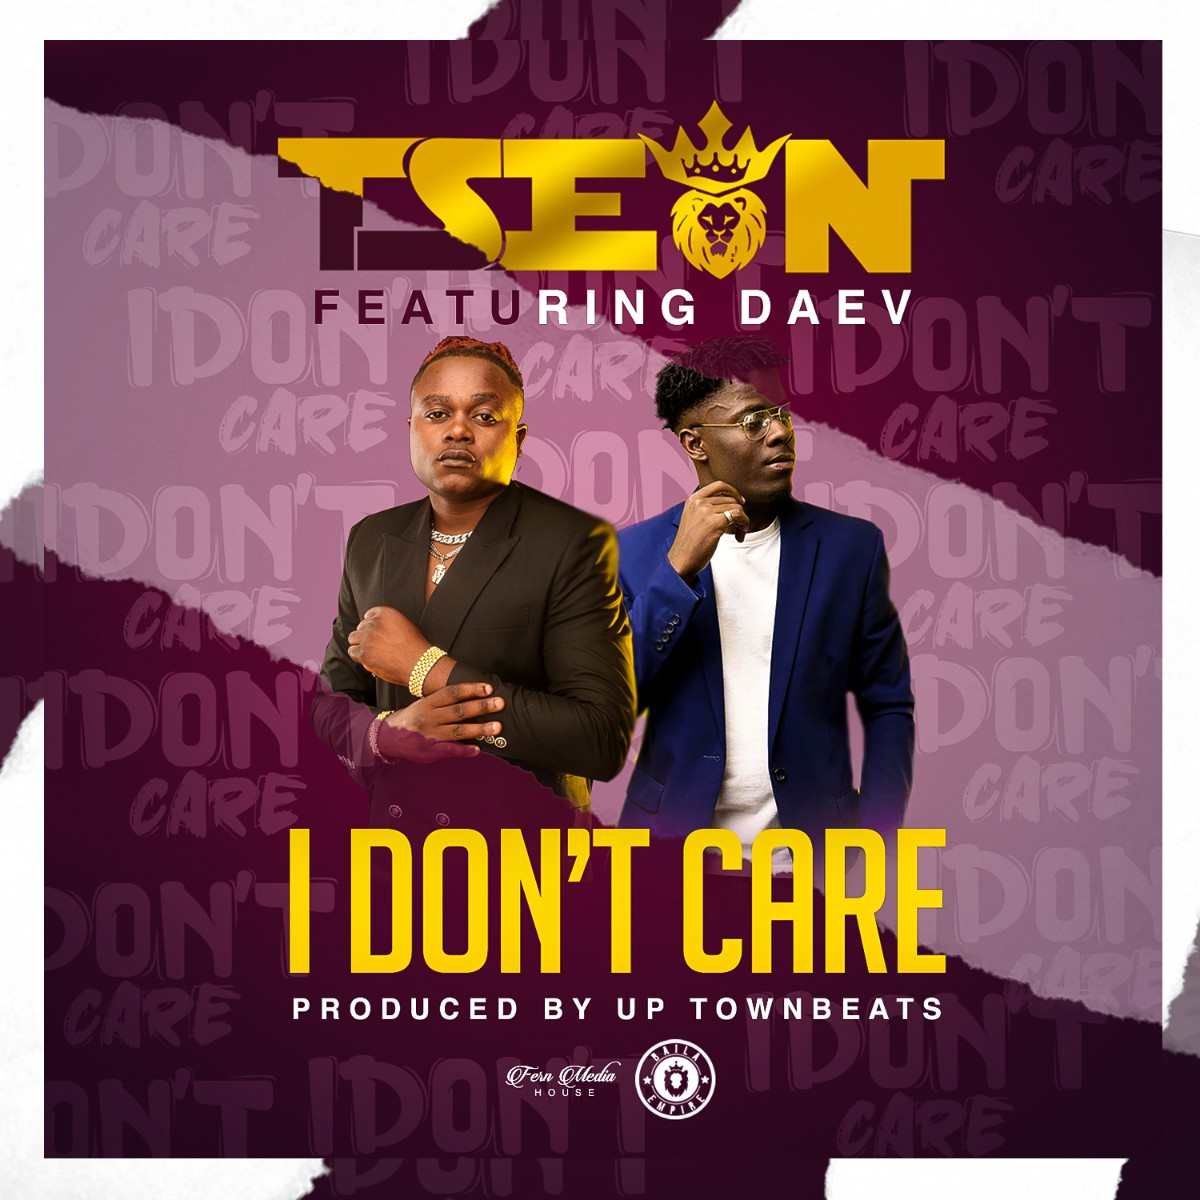 T-Sean ft. Daev - I Don't Care (Prod. Uptown Beats)